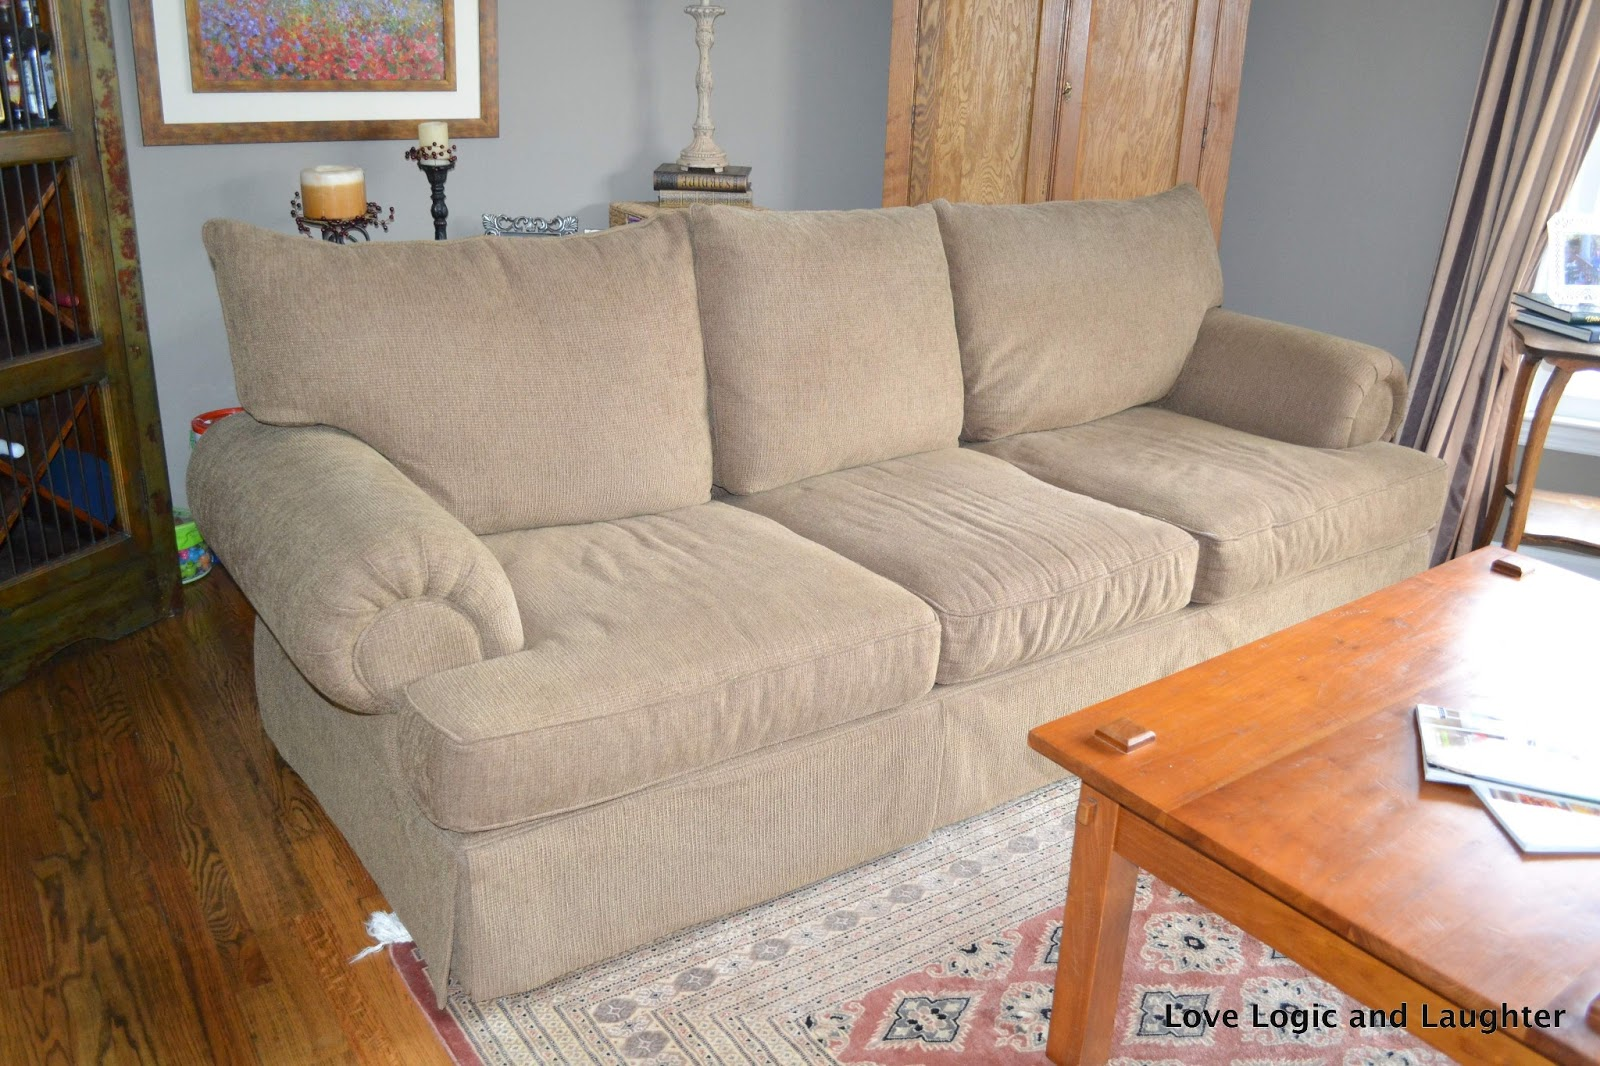 Extrem Big Sofa Couch Makeover Logic And Laughter